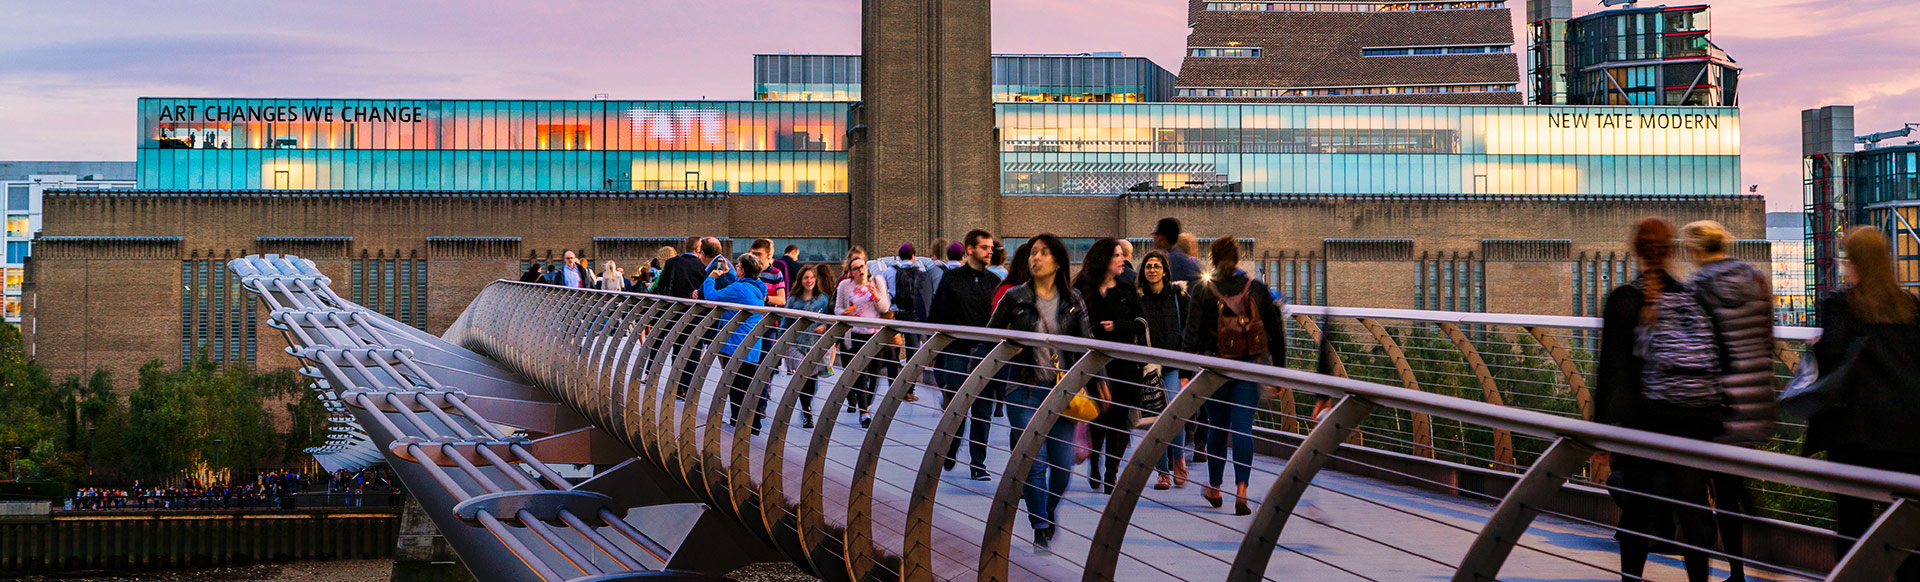 A view of Tate Modern and the Millennium Bridge from across the river Thames. © London and Partners/Jon Reid